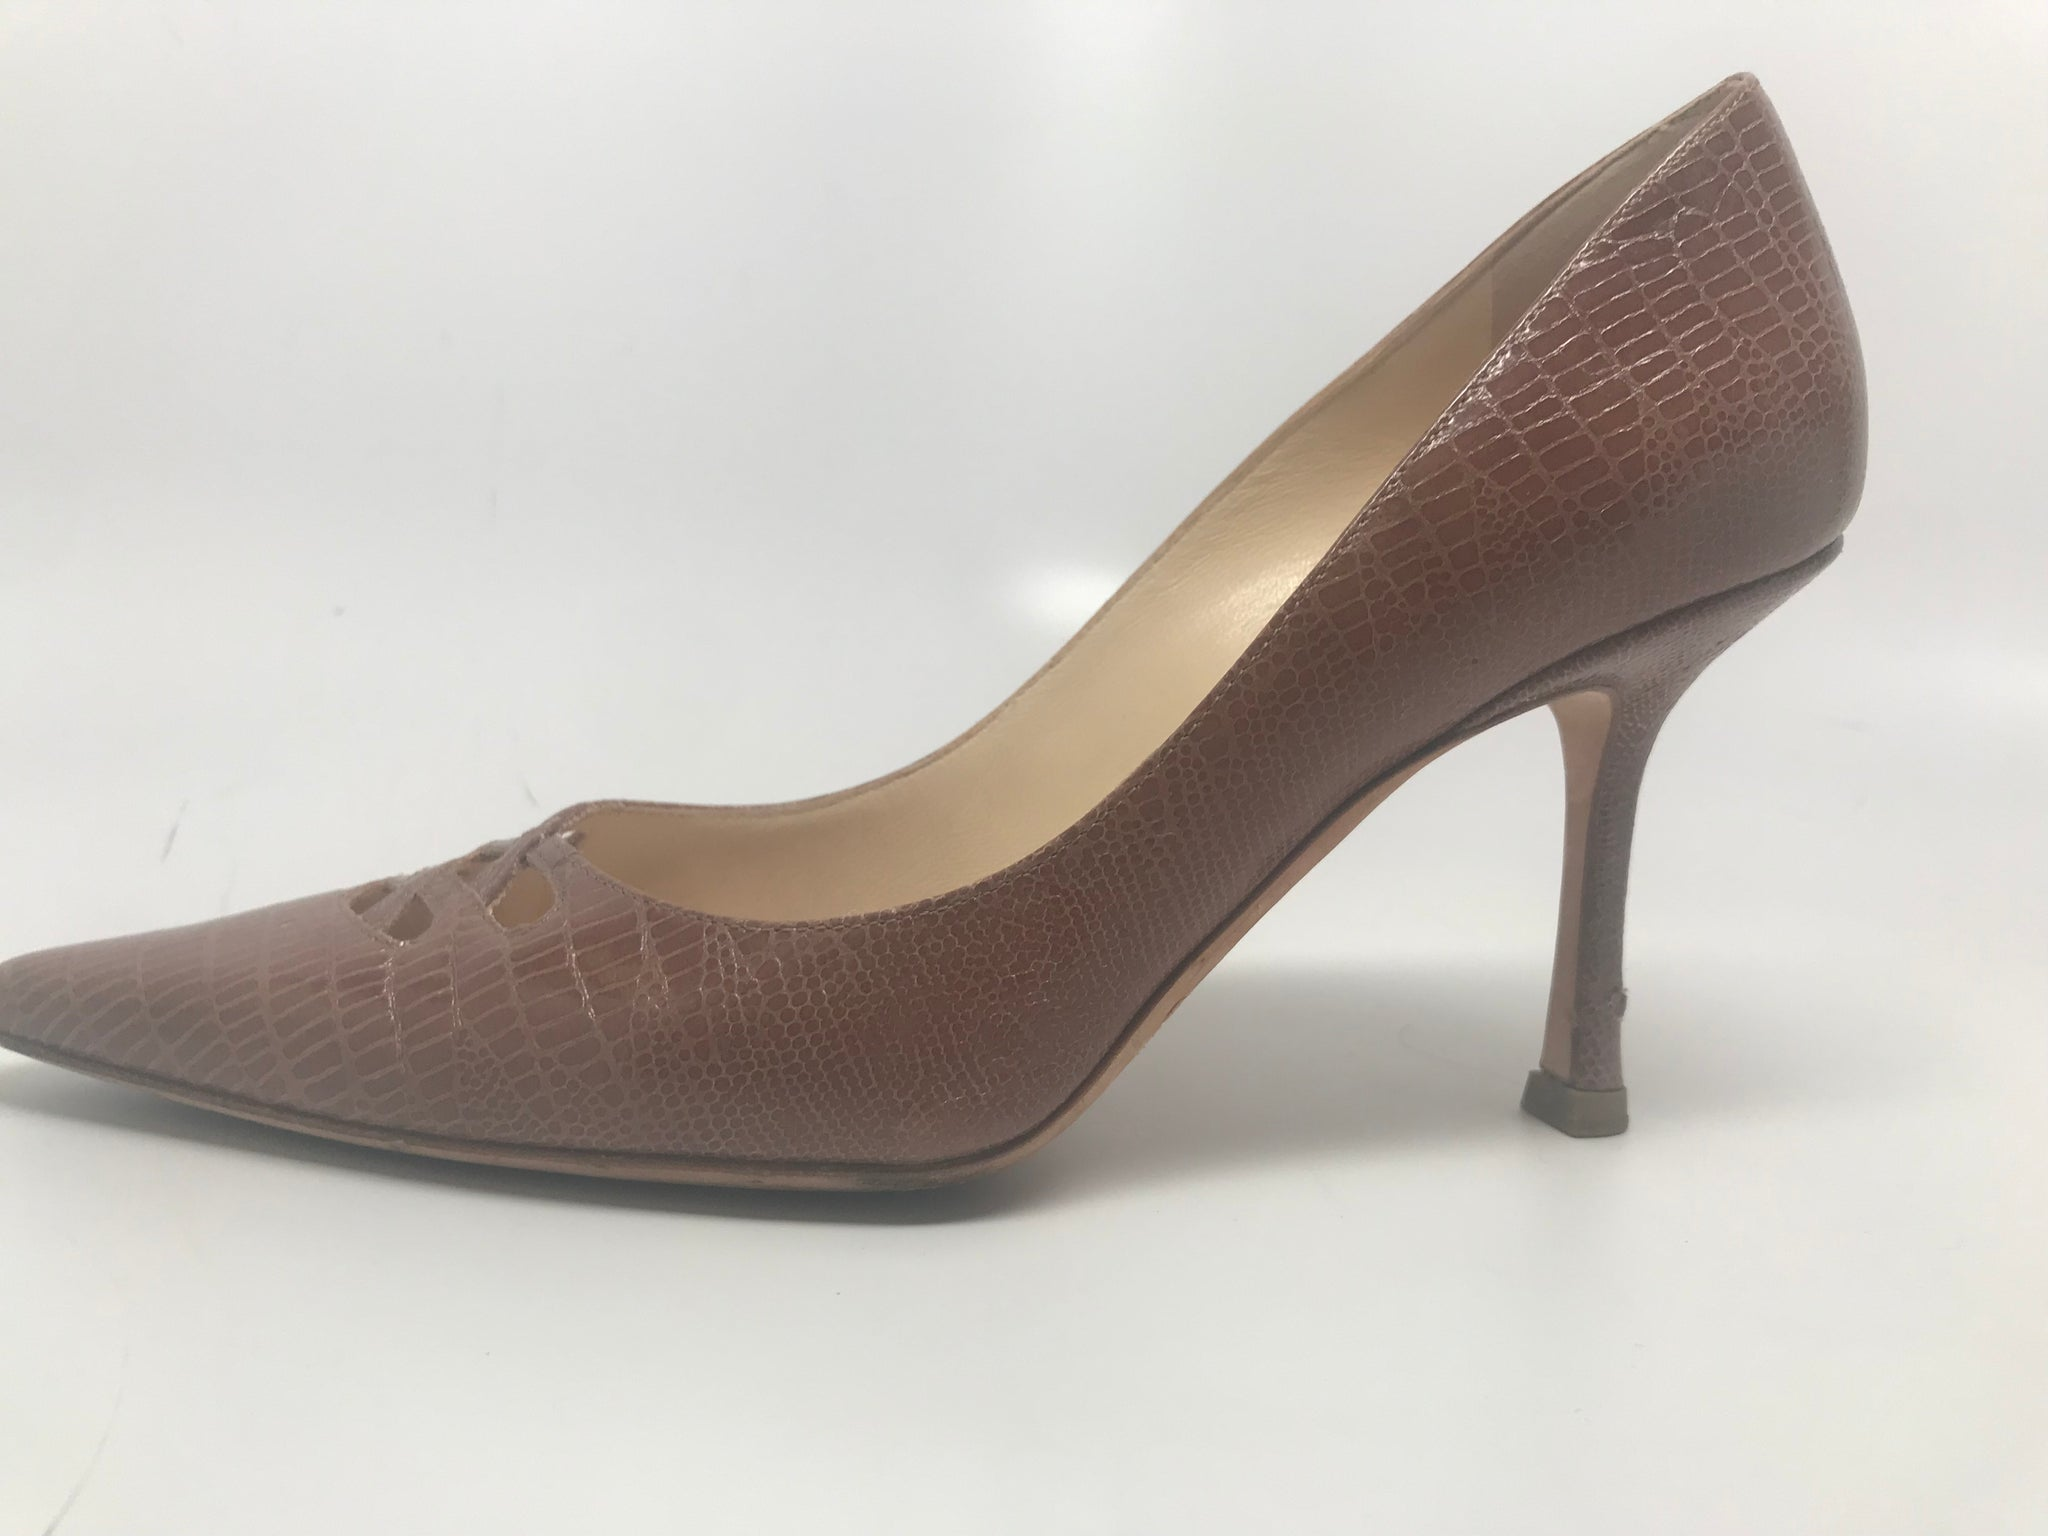 JIMMY CHOO LIZARD EMBOSSED PUMP - TAN - SIZE 37.5